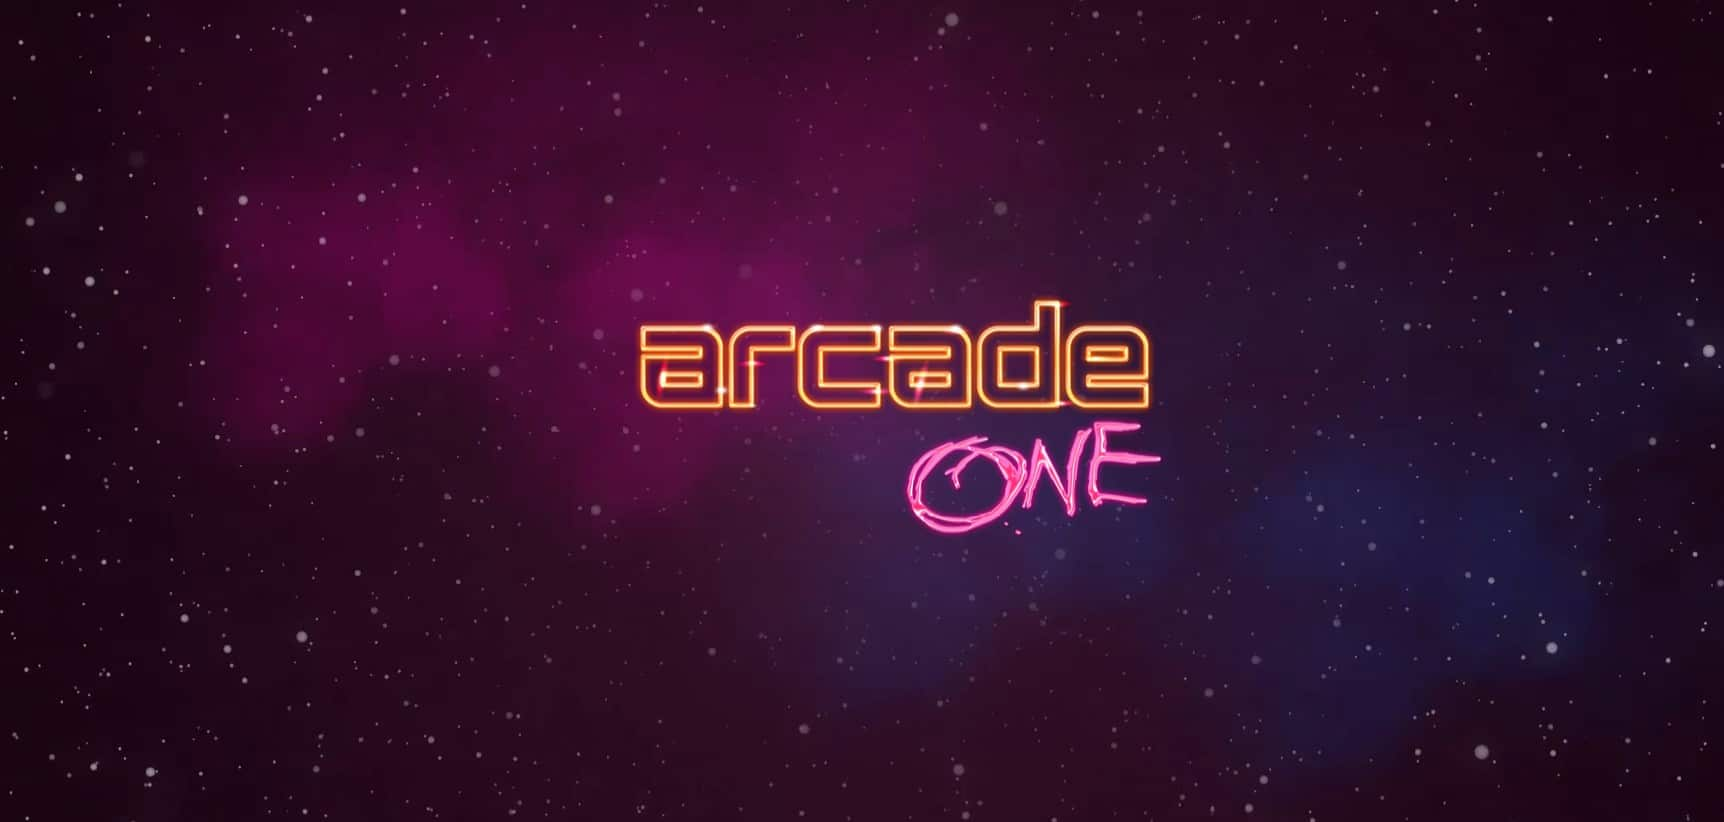 Arcade One: Großes Gaming-Event in Dortmund Anfang November 2016